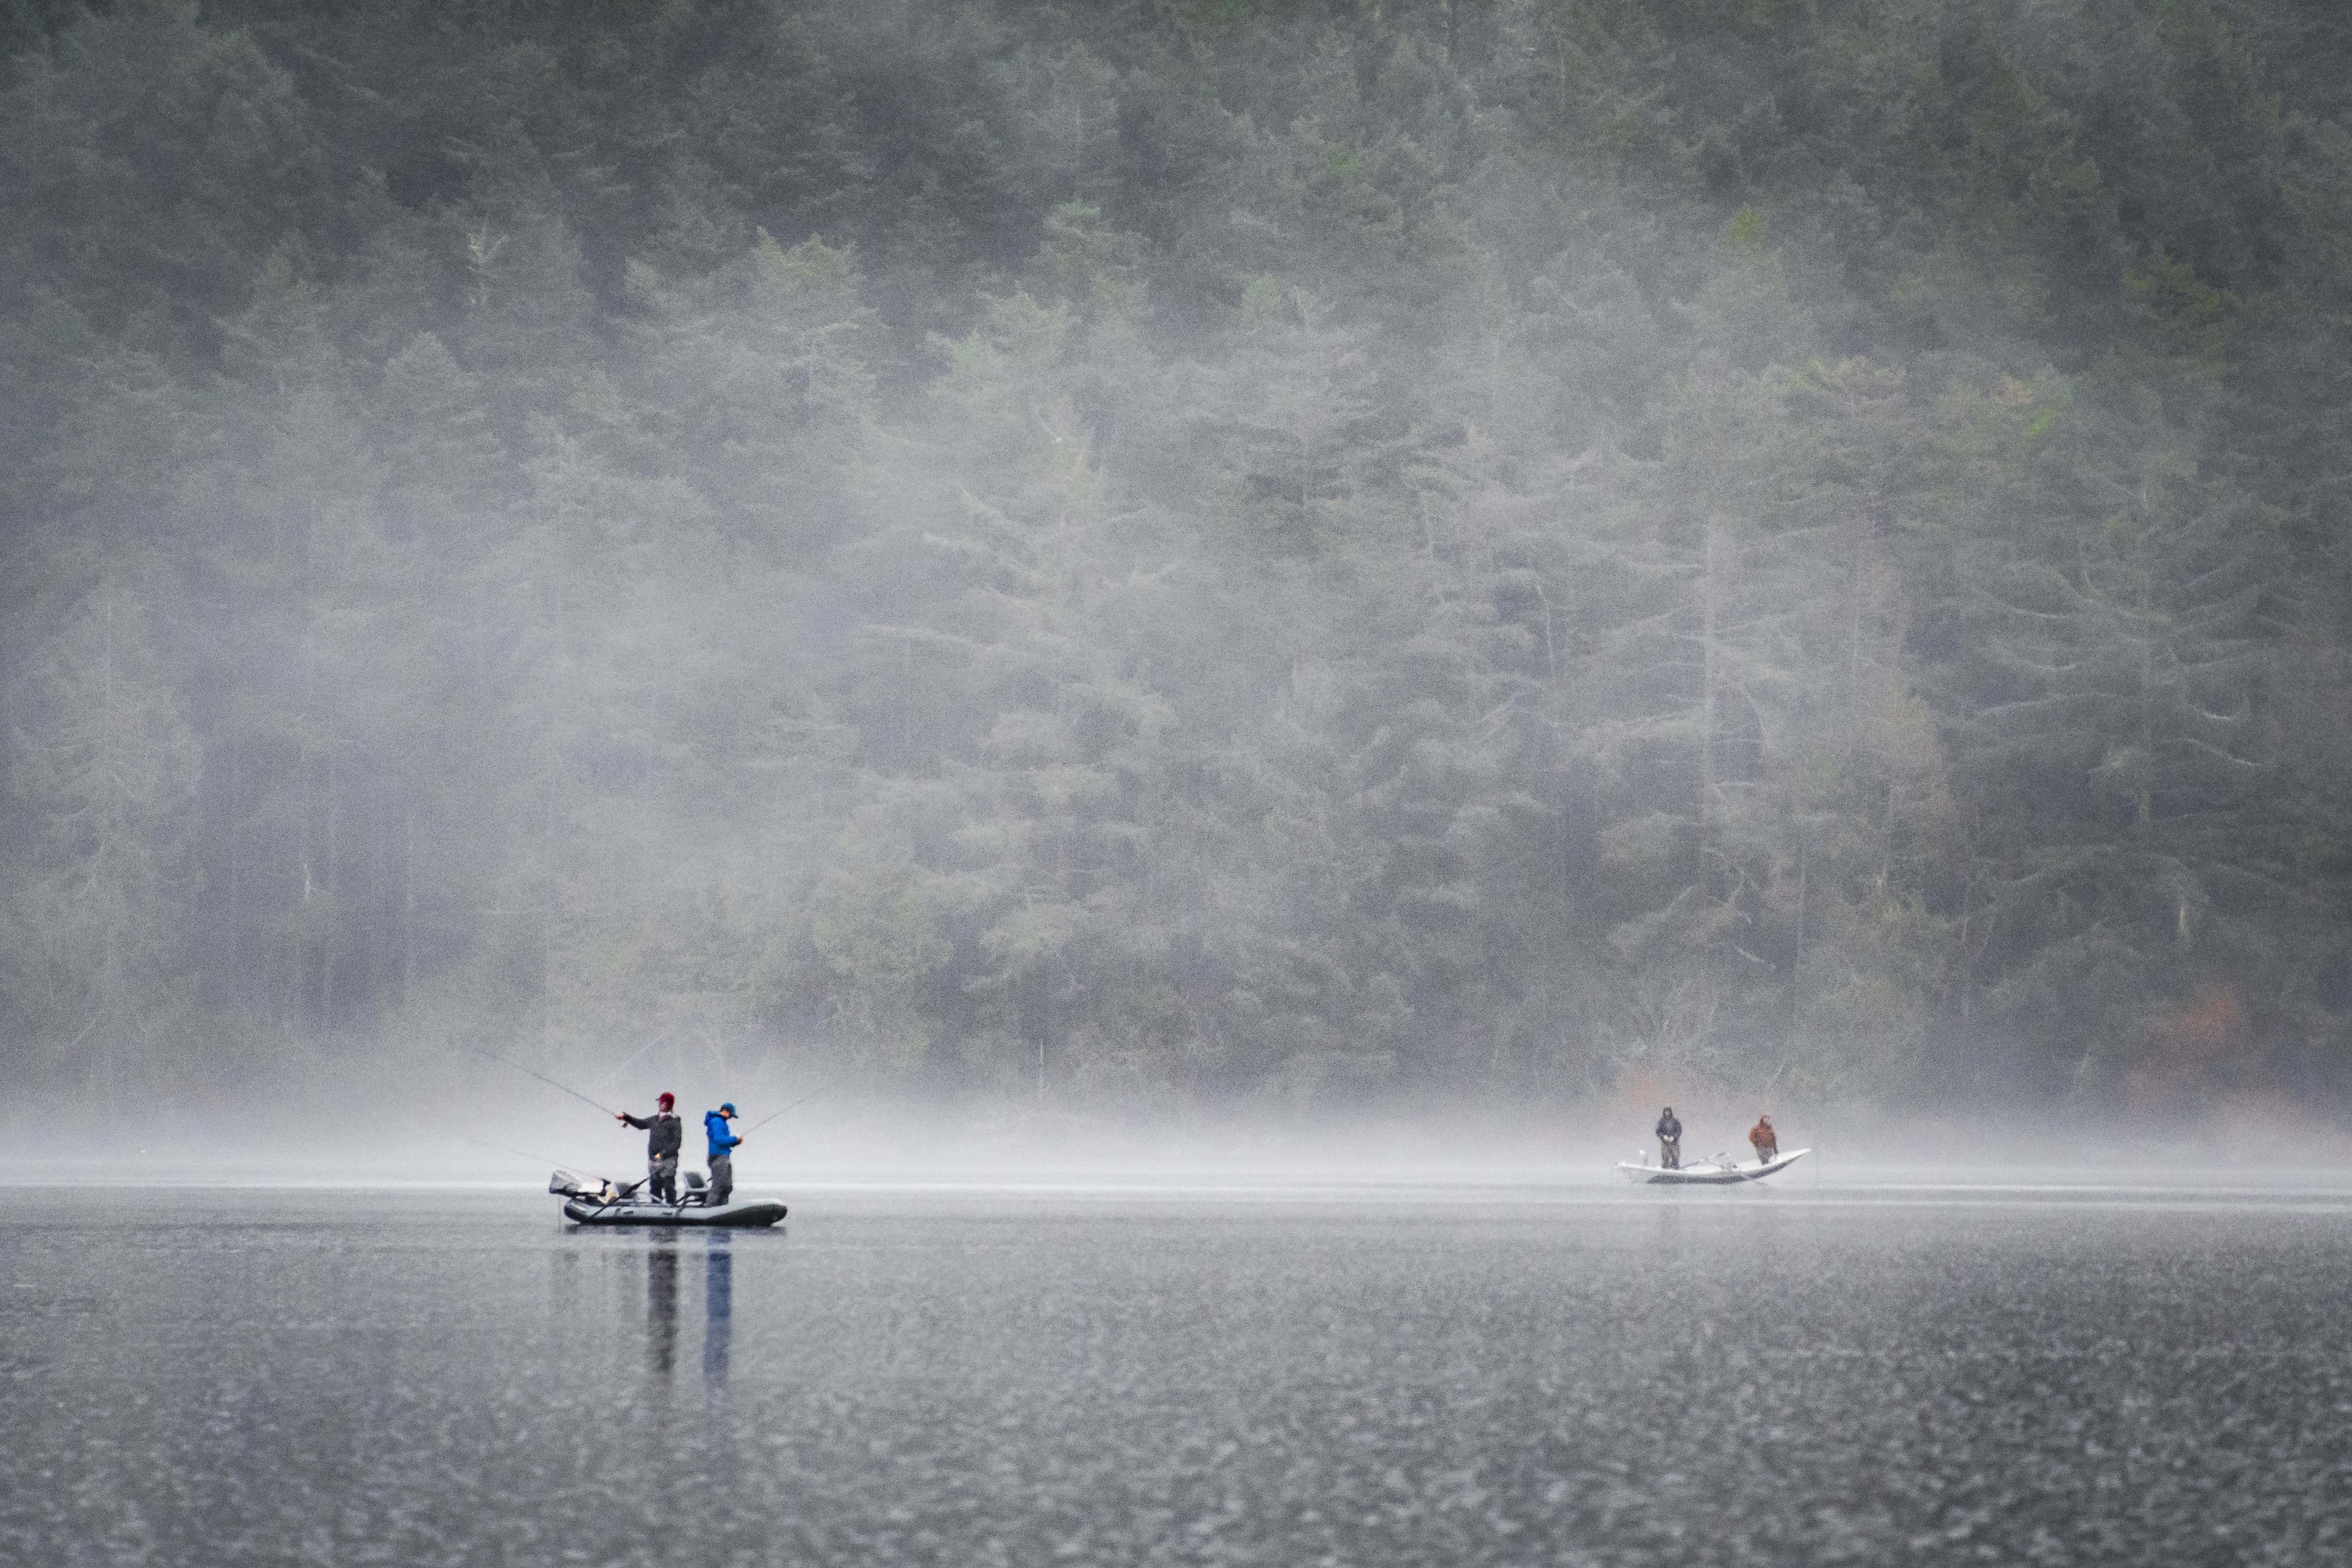 people on boat fishing near foggy forest